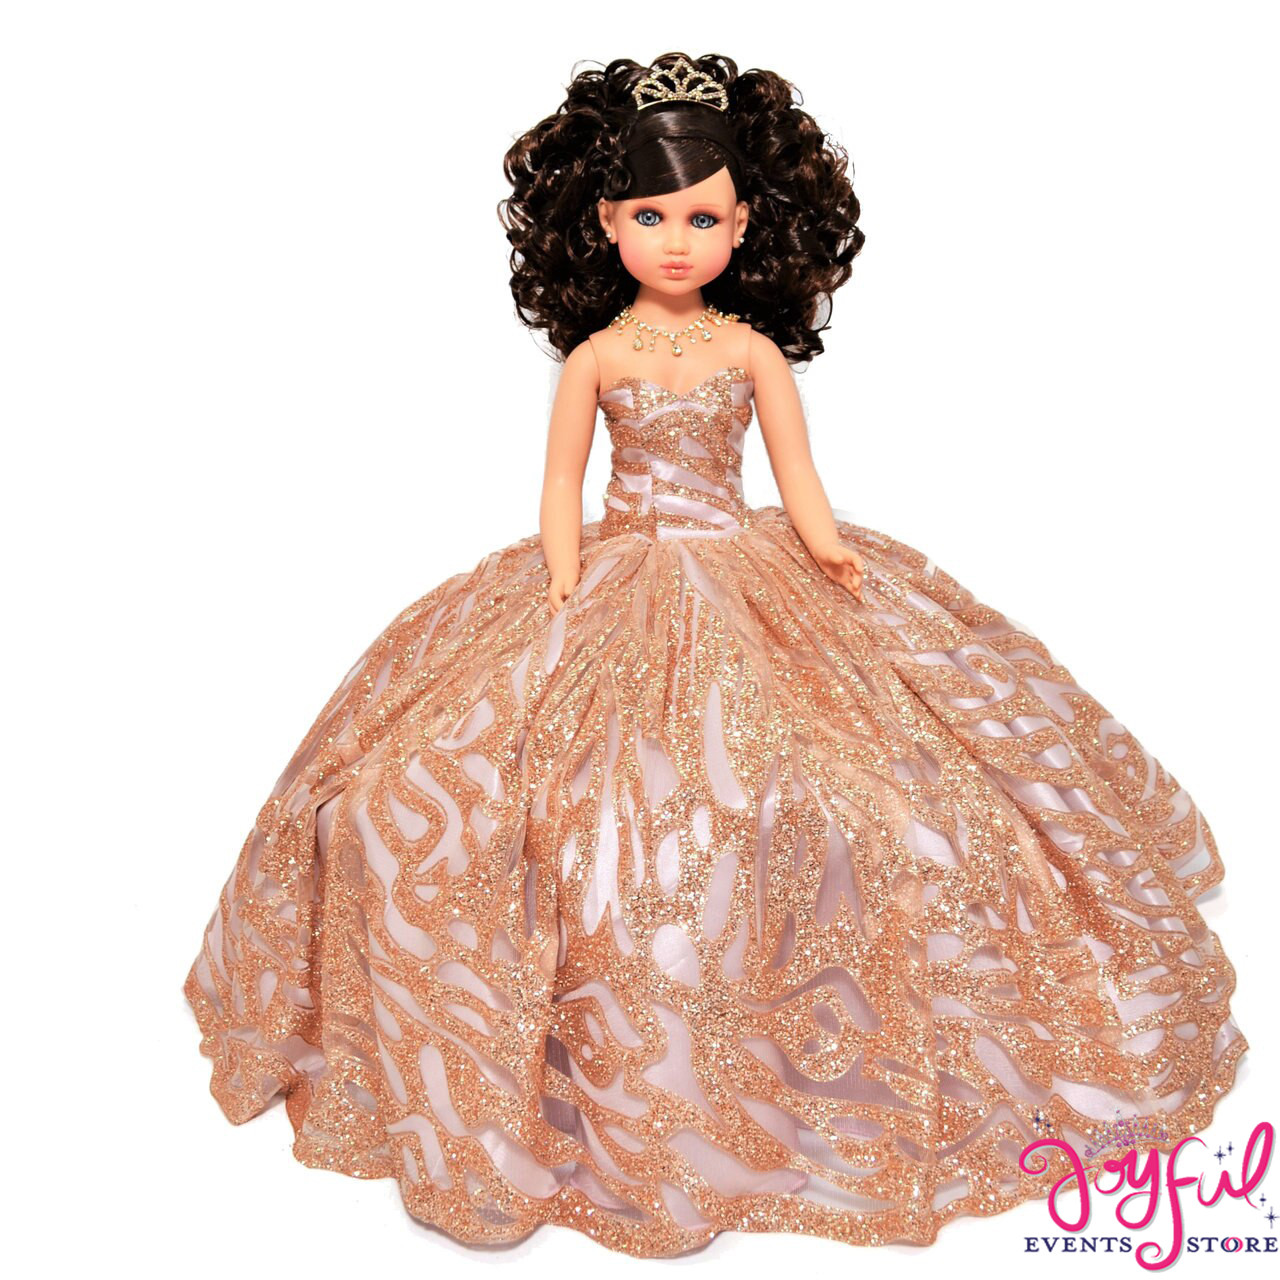 20 Quinceanera Last Doll Or Ultima Muneca Dressed In A Rose Gold Dress